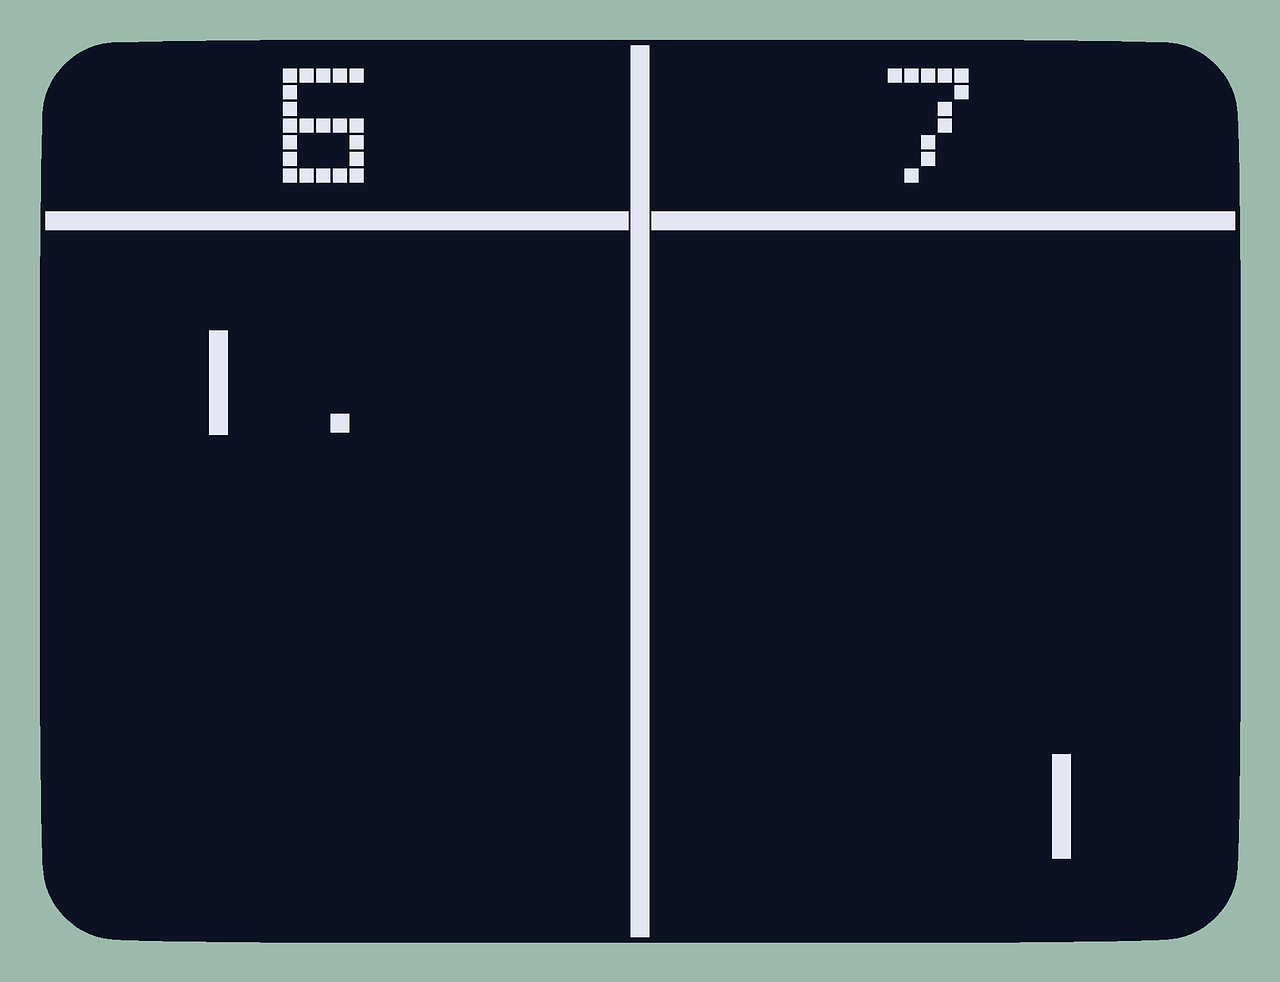 pong